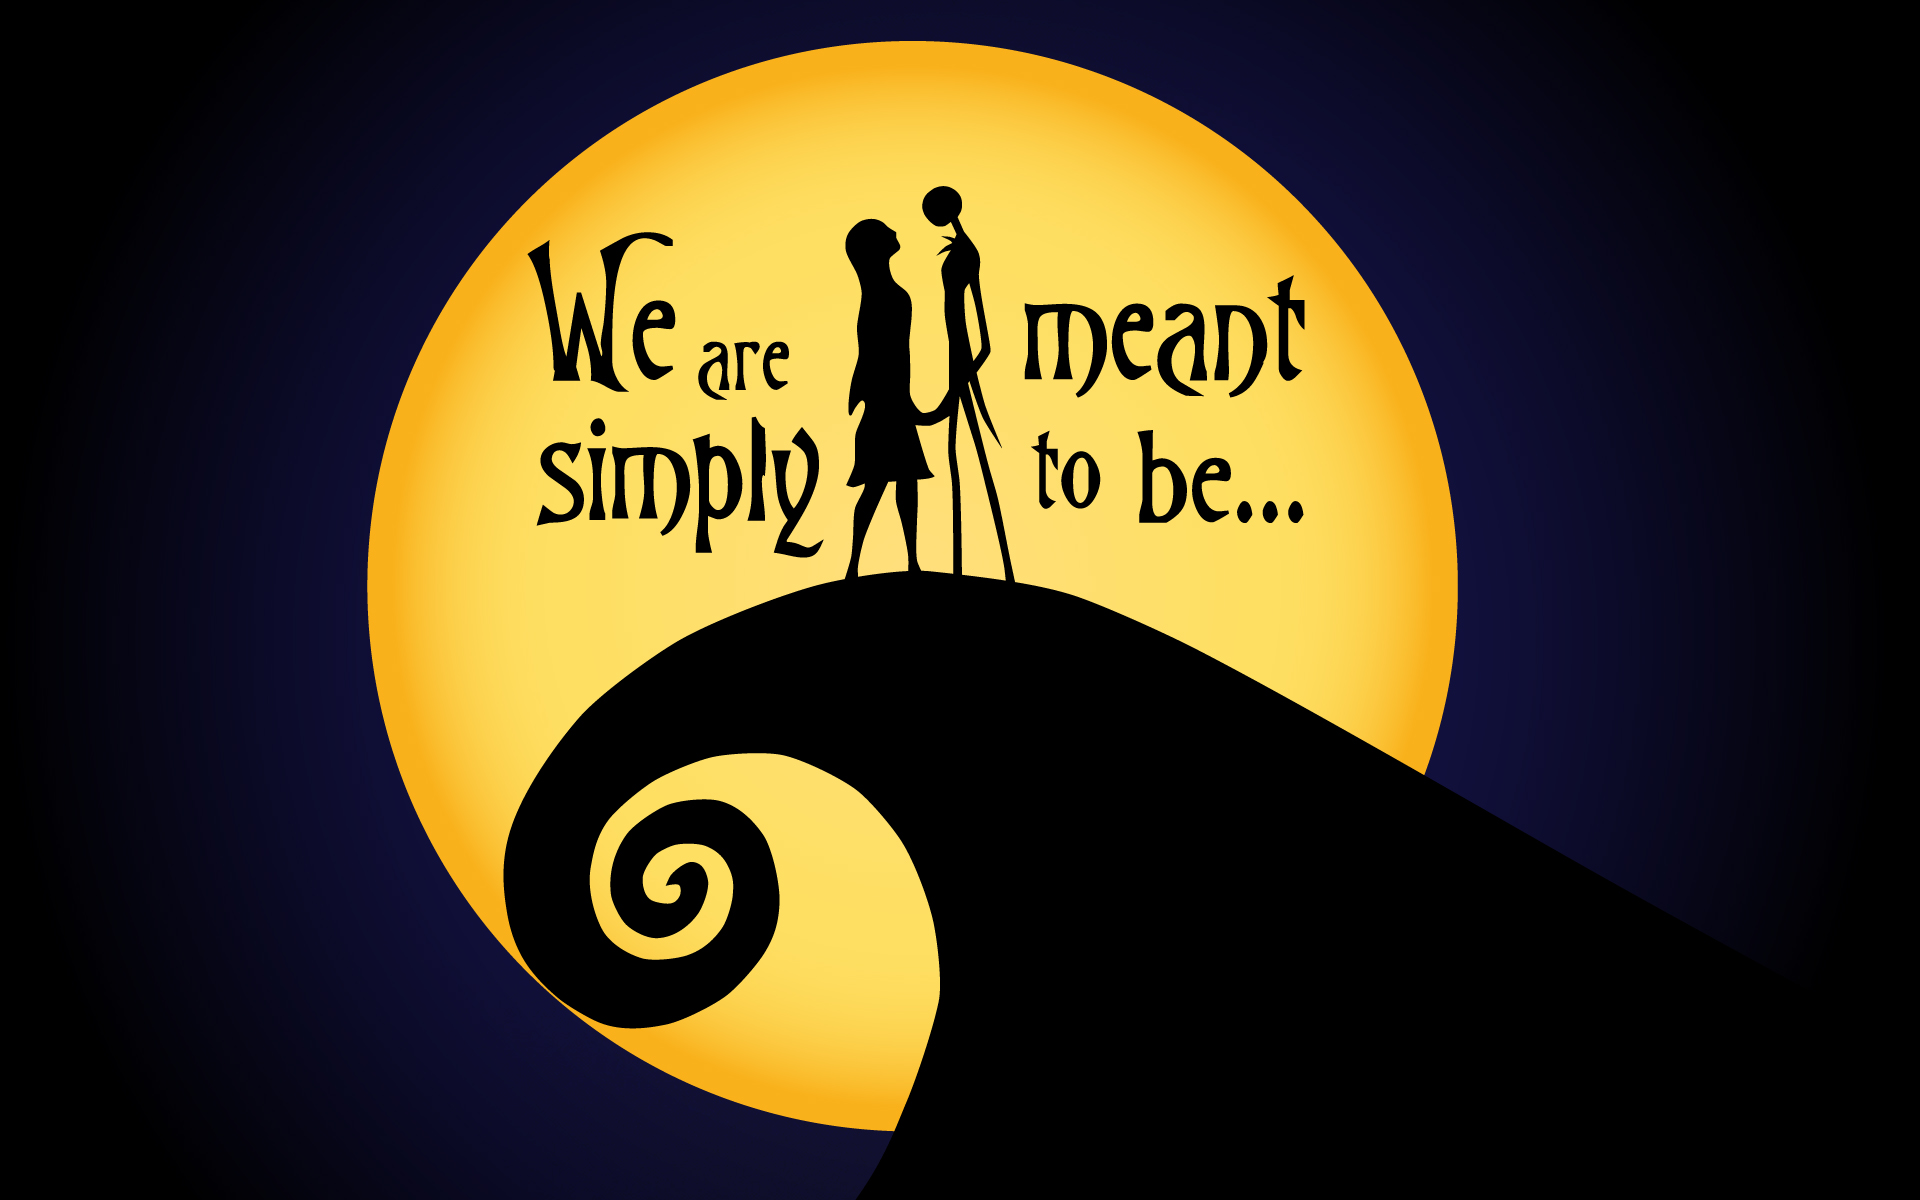 nightmare before christmas wallpapers 1280x1024